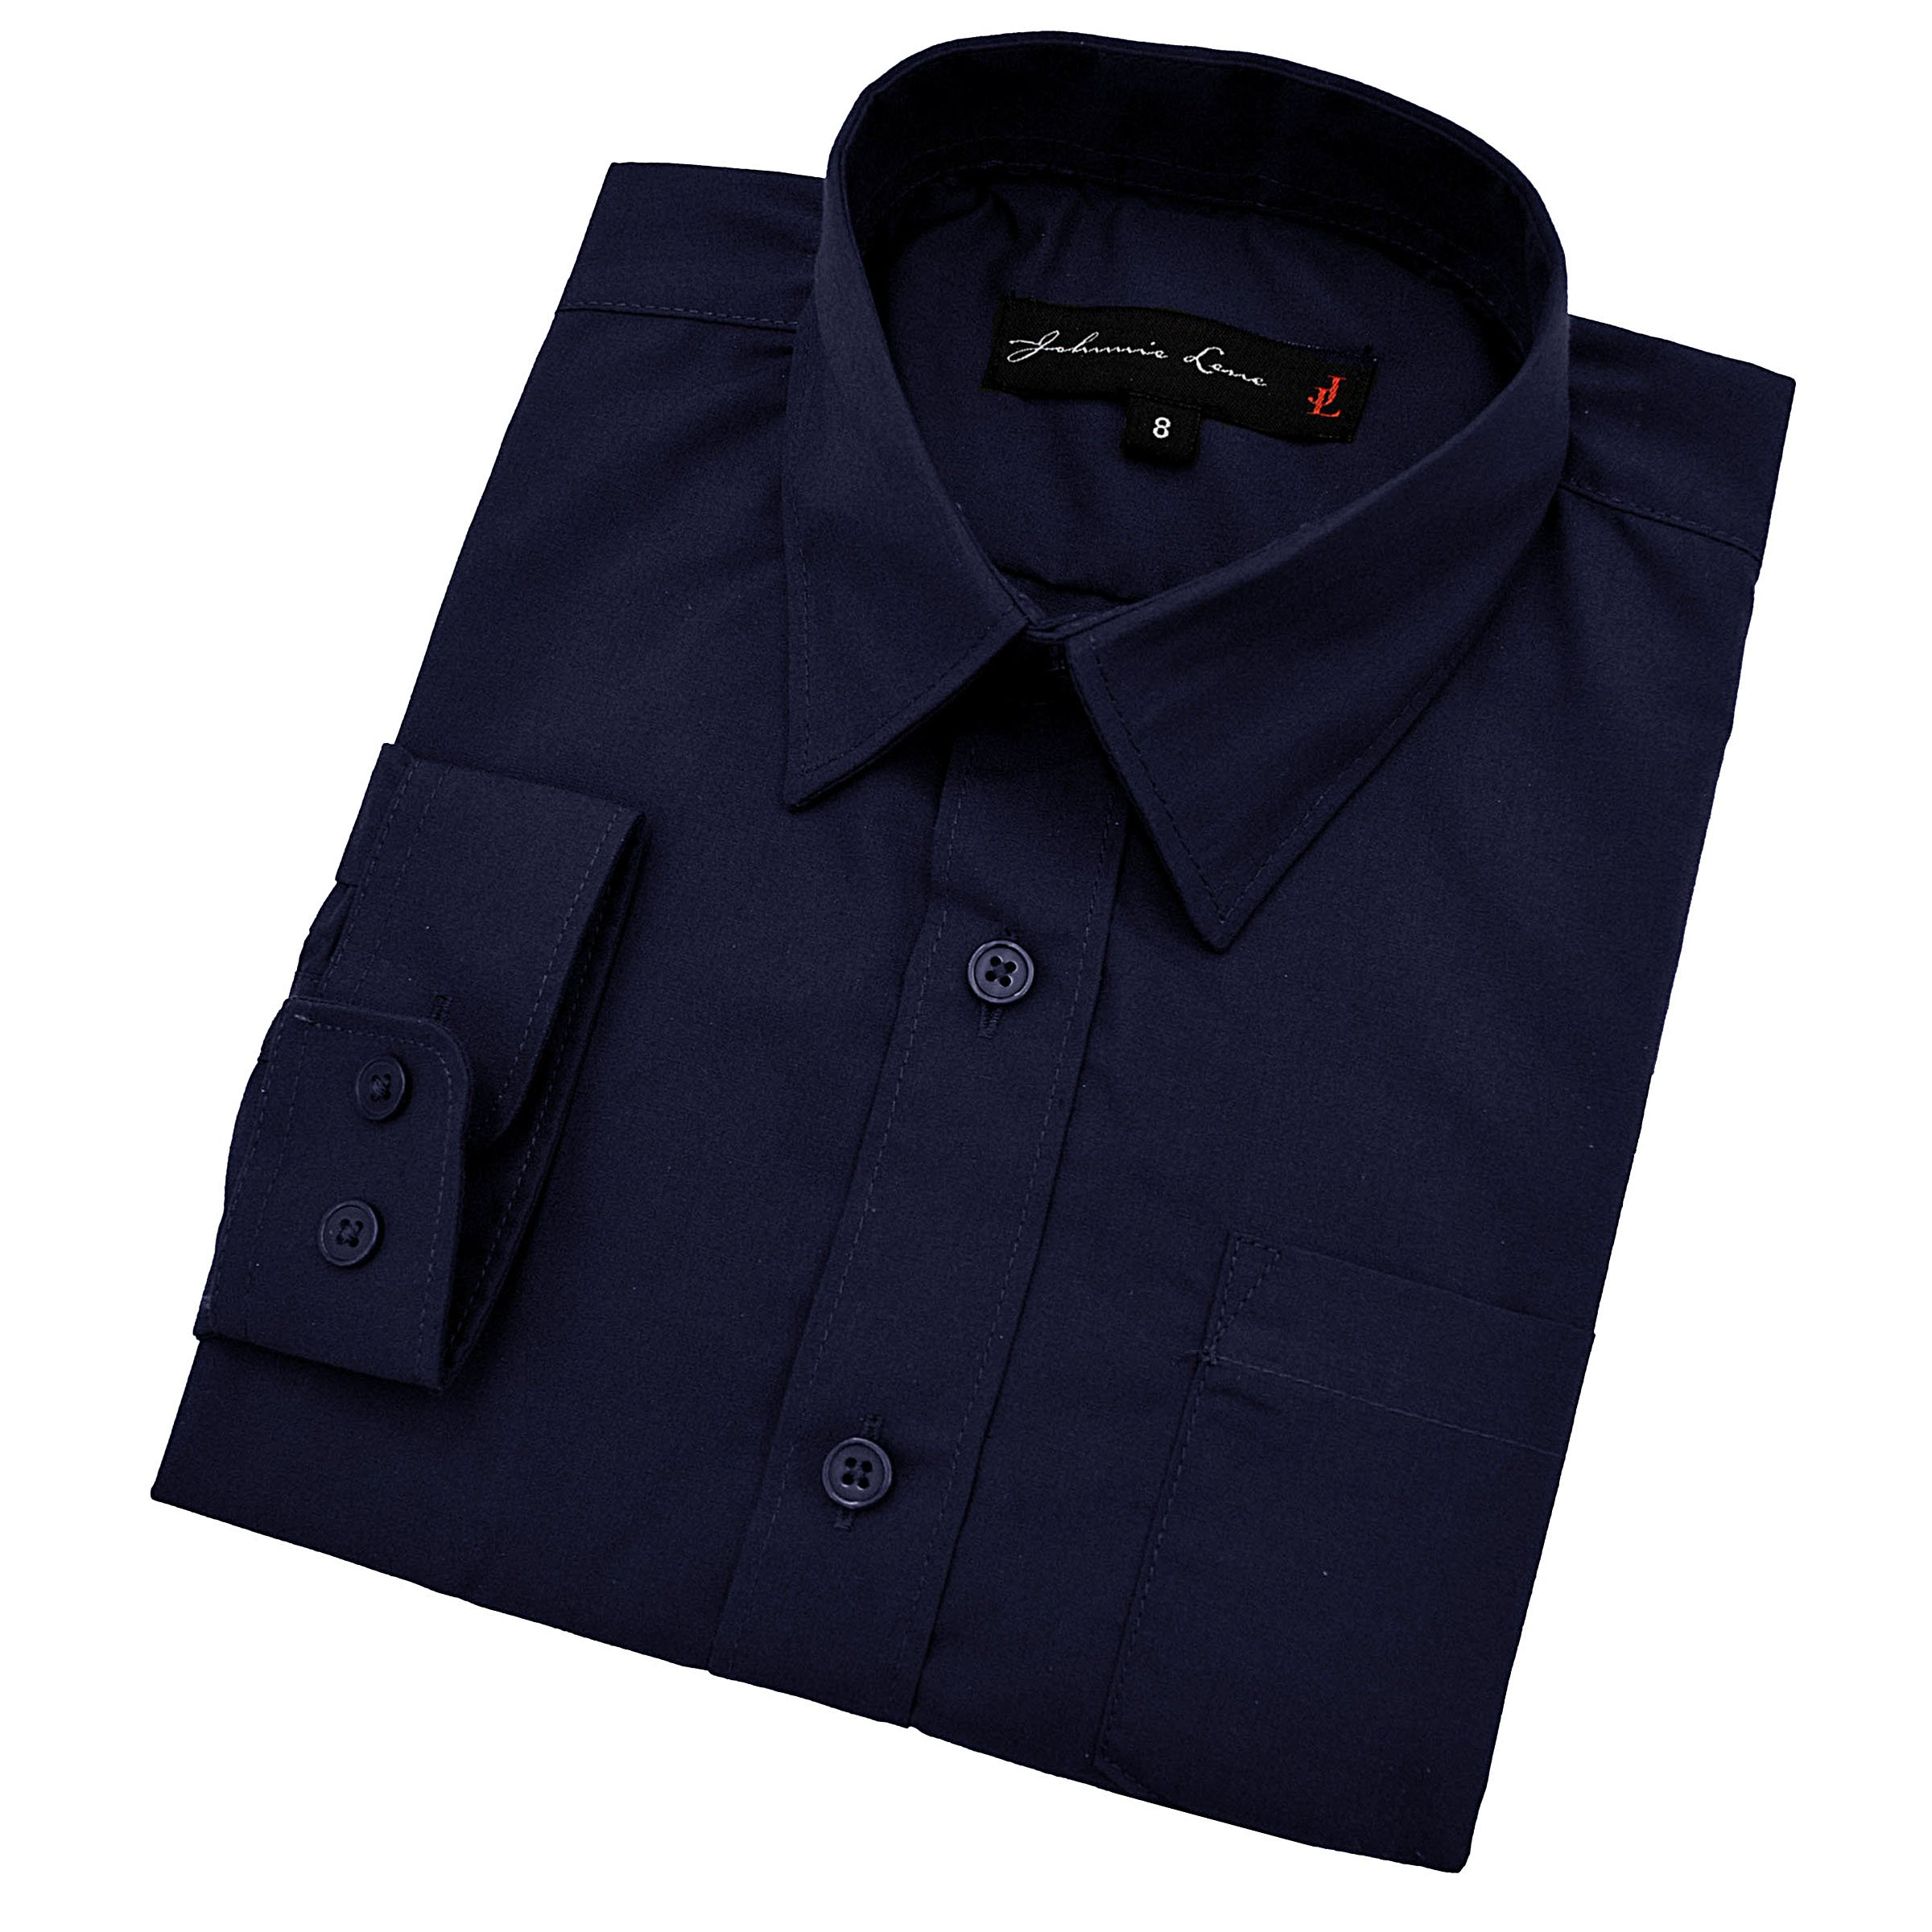 Baby Boy's Long Sleeves Solid Dress Shirt #JL32 (24 Months, Navy)